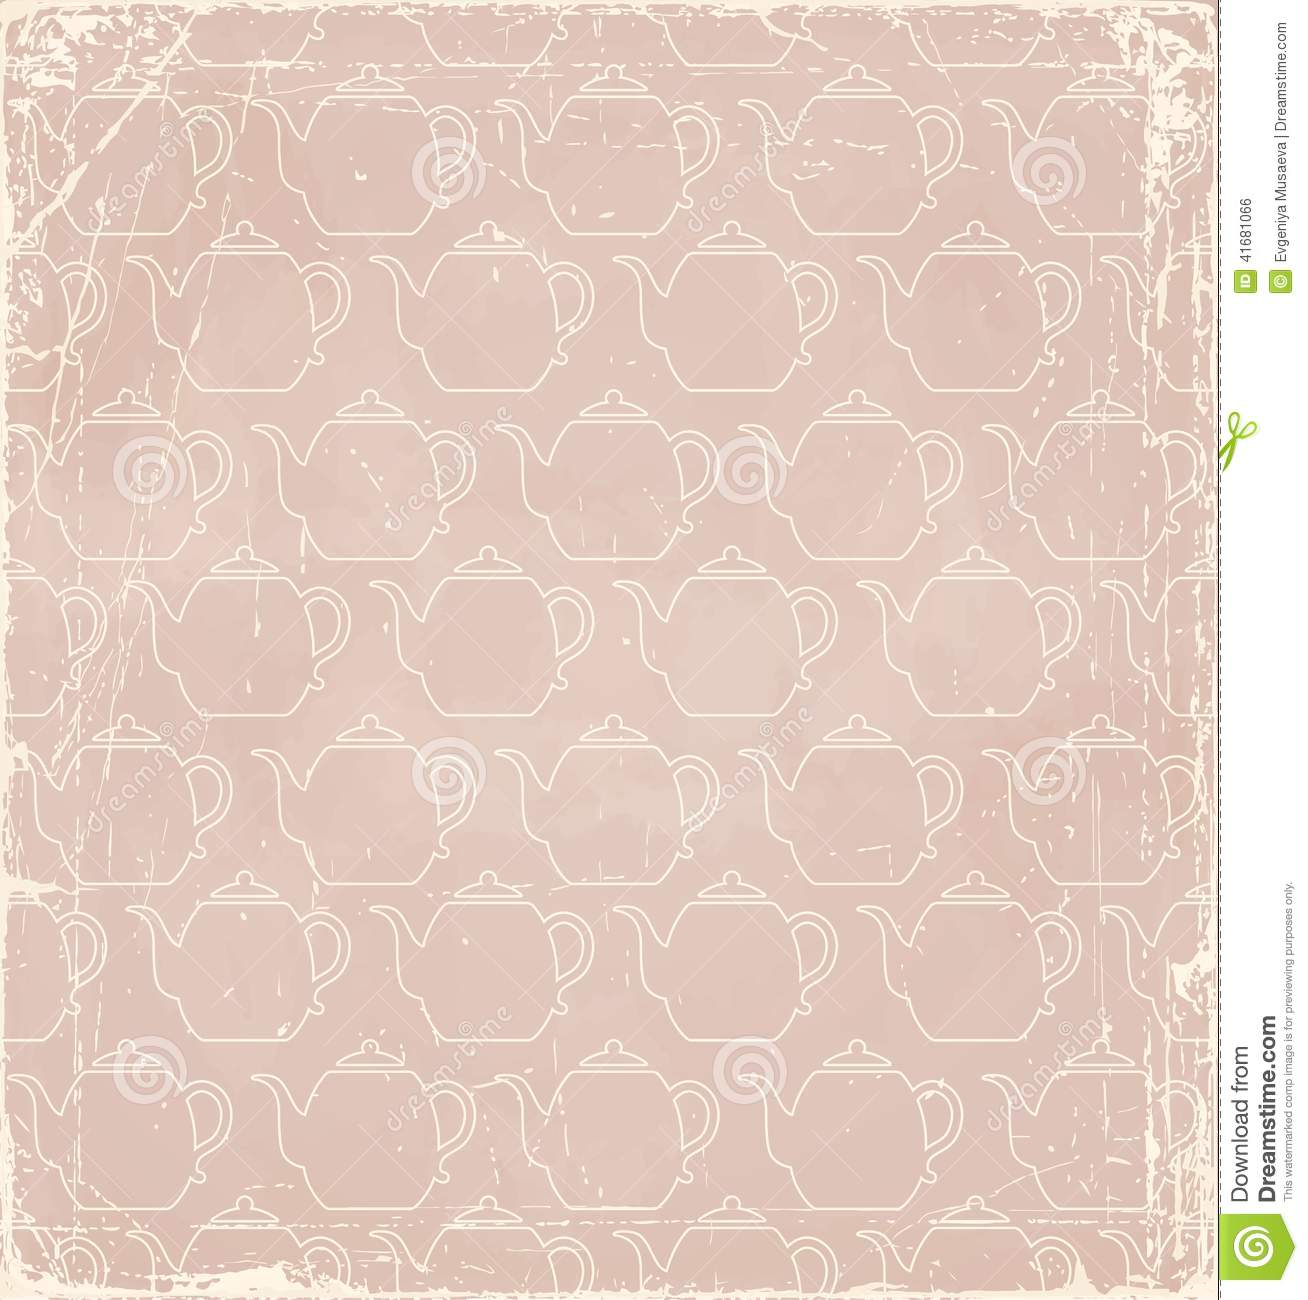 Tea party background royalty free stock photo image 28839215 - Jpg 1308x1300 Tea Party Background